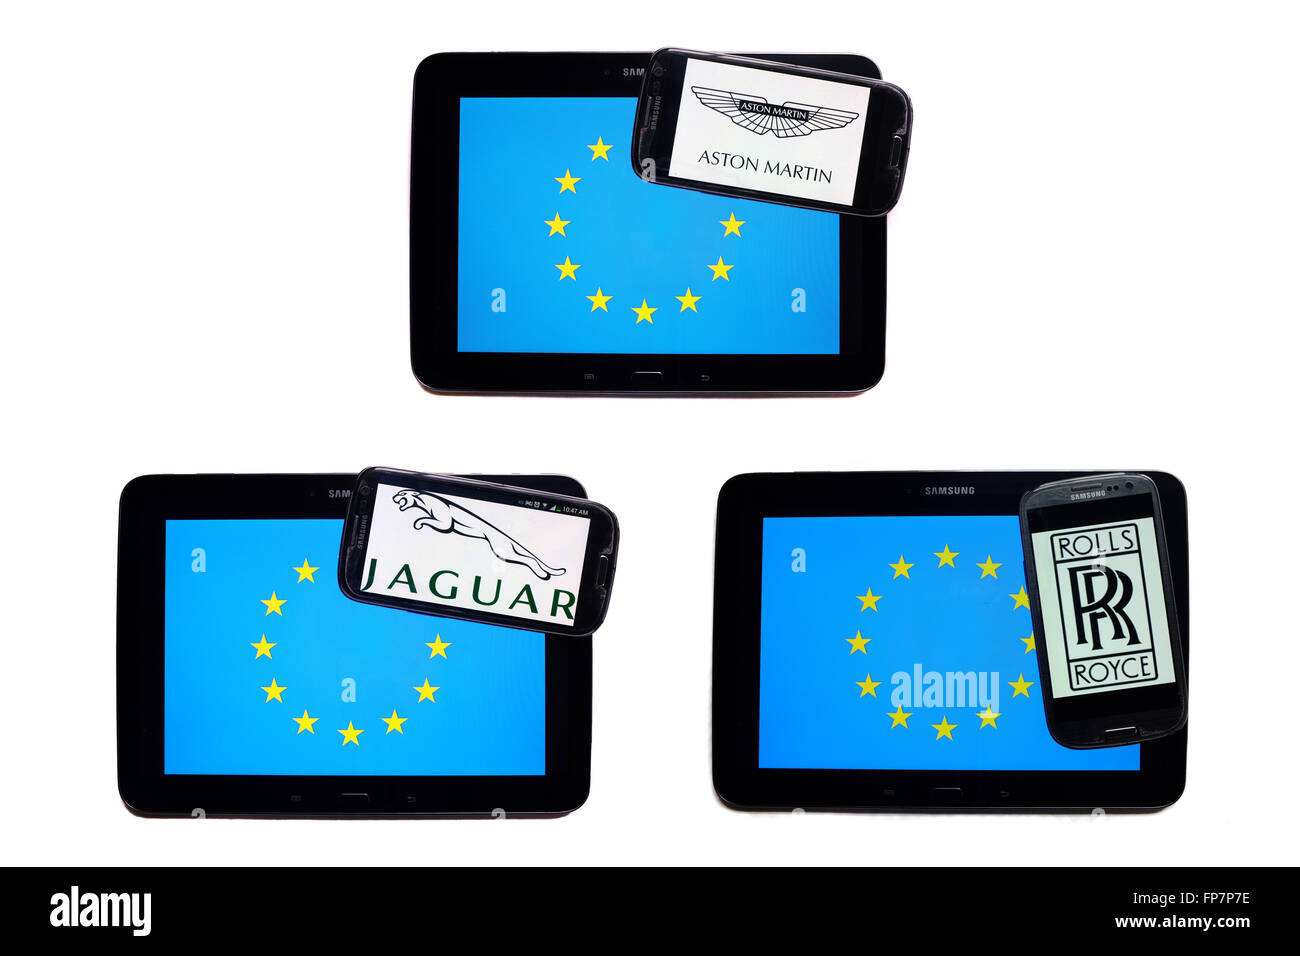 The logos of British car companies on the screens of smartphones displayed on top of the EU flag. - Stock Image